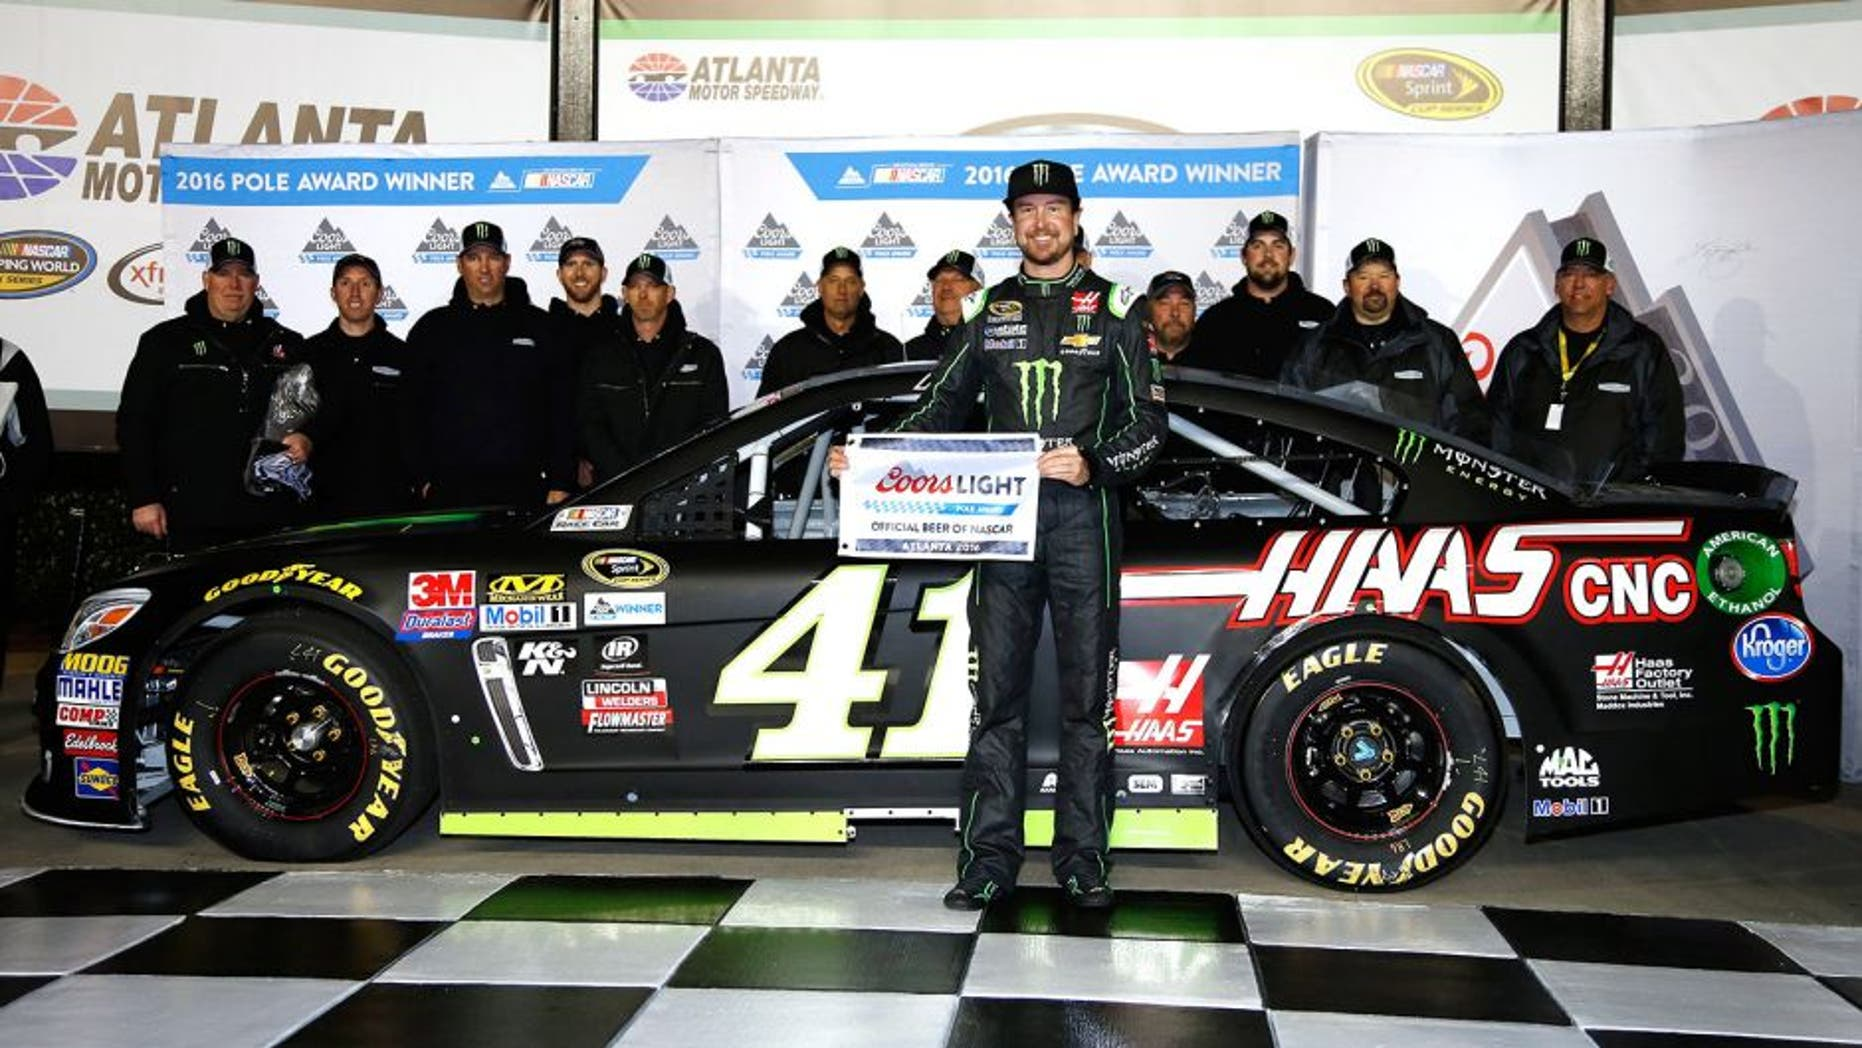 HAMPTON, GA - FEBRUARY 26: Kurt Busch, driver of the #41 Monster Energy/Haas Automation Chevrolet, poses with the Coors Light Pole Award after qualifying for pole position for the NASCAR Sprint Cup Series Folds of Honor QuikTrip 500 at Atlanta Motor Speedway on February 26, 2016 in Hampton, Georgia. (Photo by Todd Warshaw/NASCAR via Getty Images)